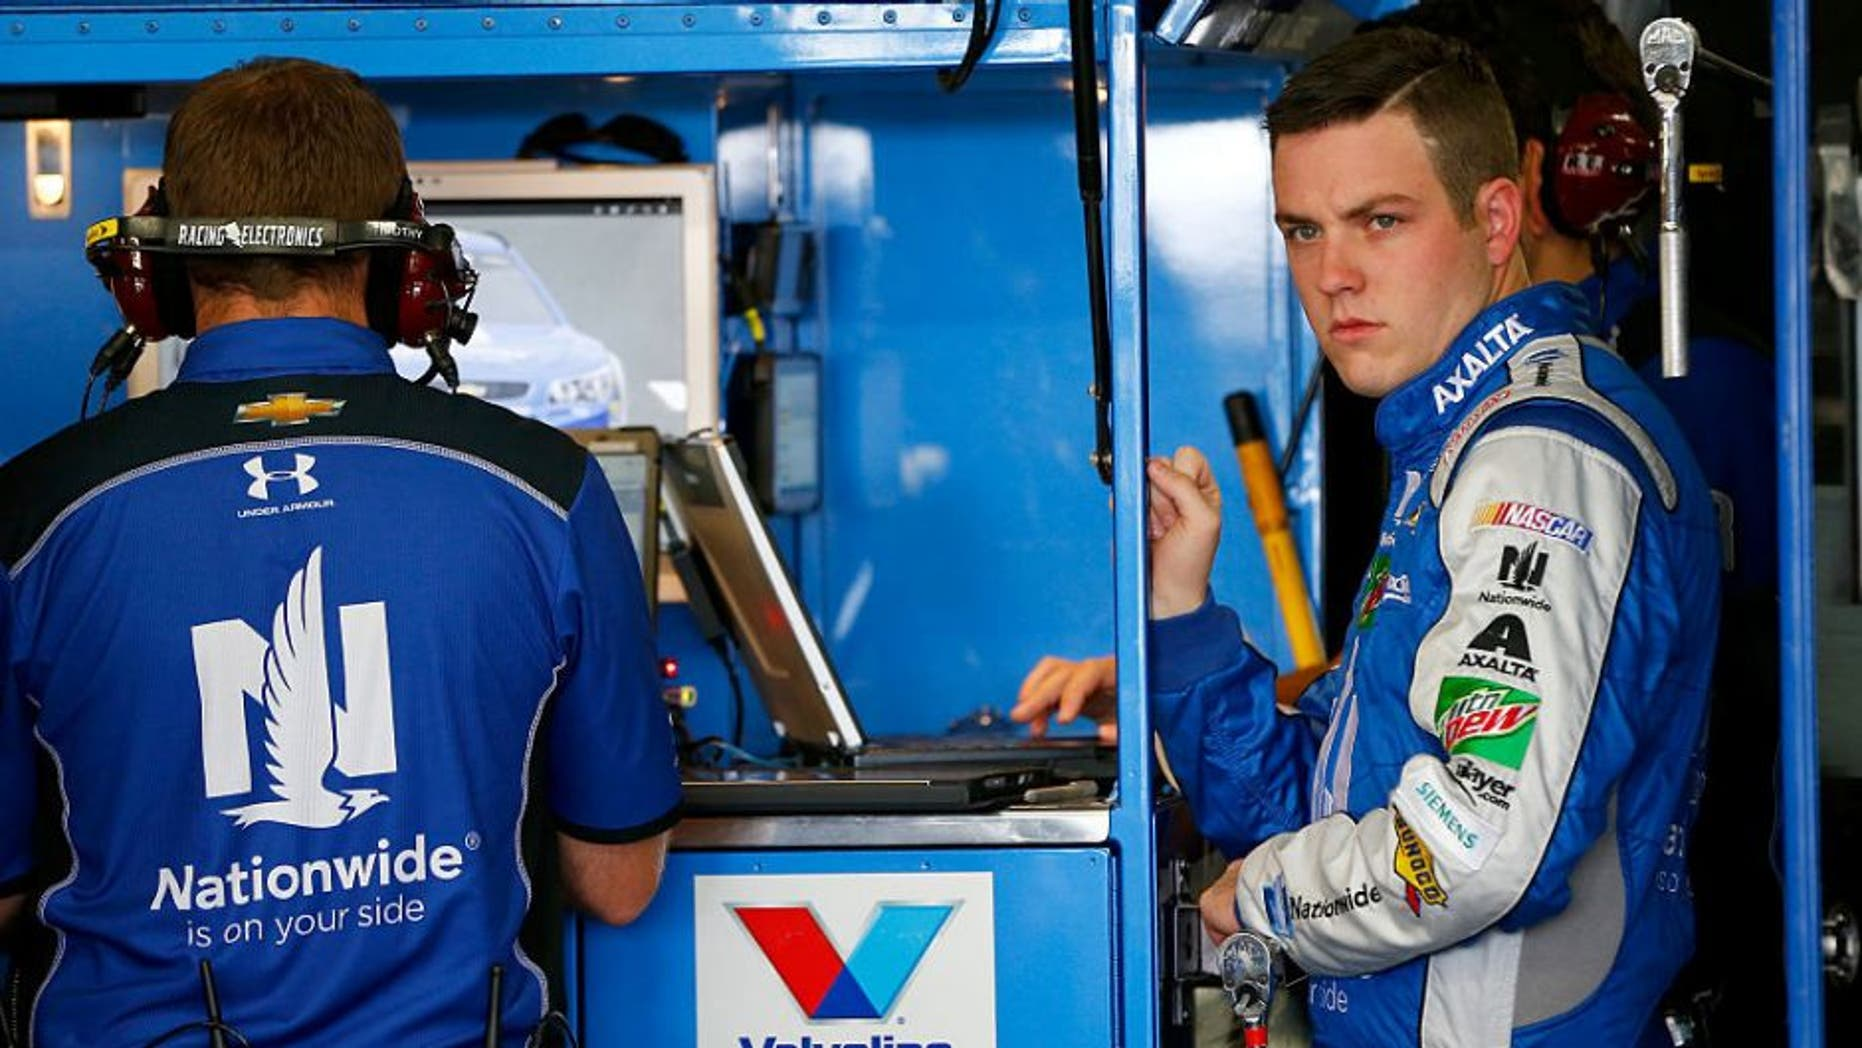 LOUDON, NH - SEPTEMBER 23: Alex Bowman, driver of the #88 Nationwide Chevrolet, stands in the garage area during practice for the NASCAR Sprint Cup Series Bad Boy Off Road 300 at New Hampshire Motor Speedway on September 23, 2016 in Loudon, New Hampshire. (Photo by Jonathan Ferrey/Getty Images)